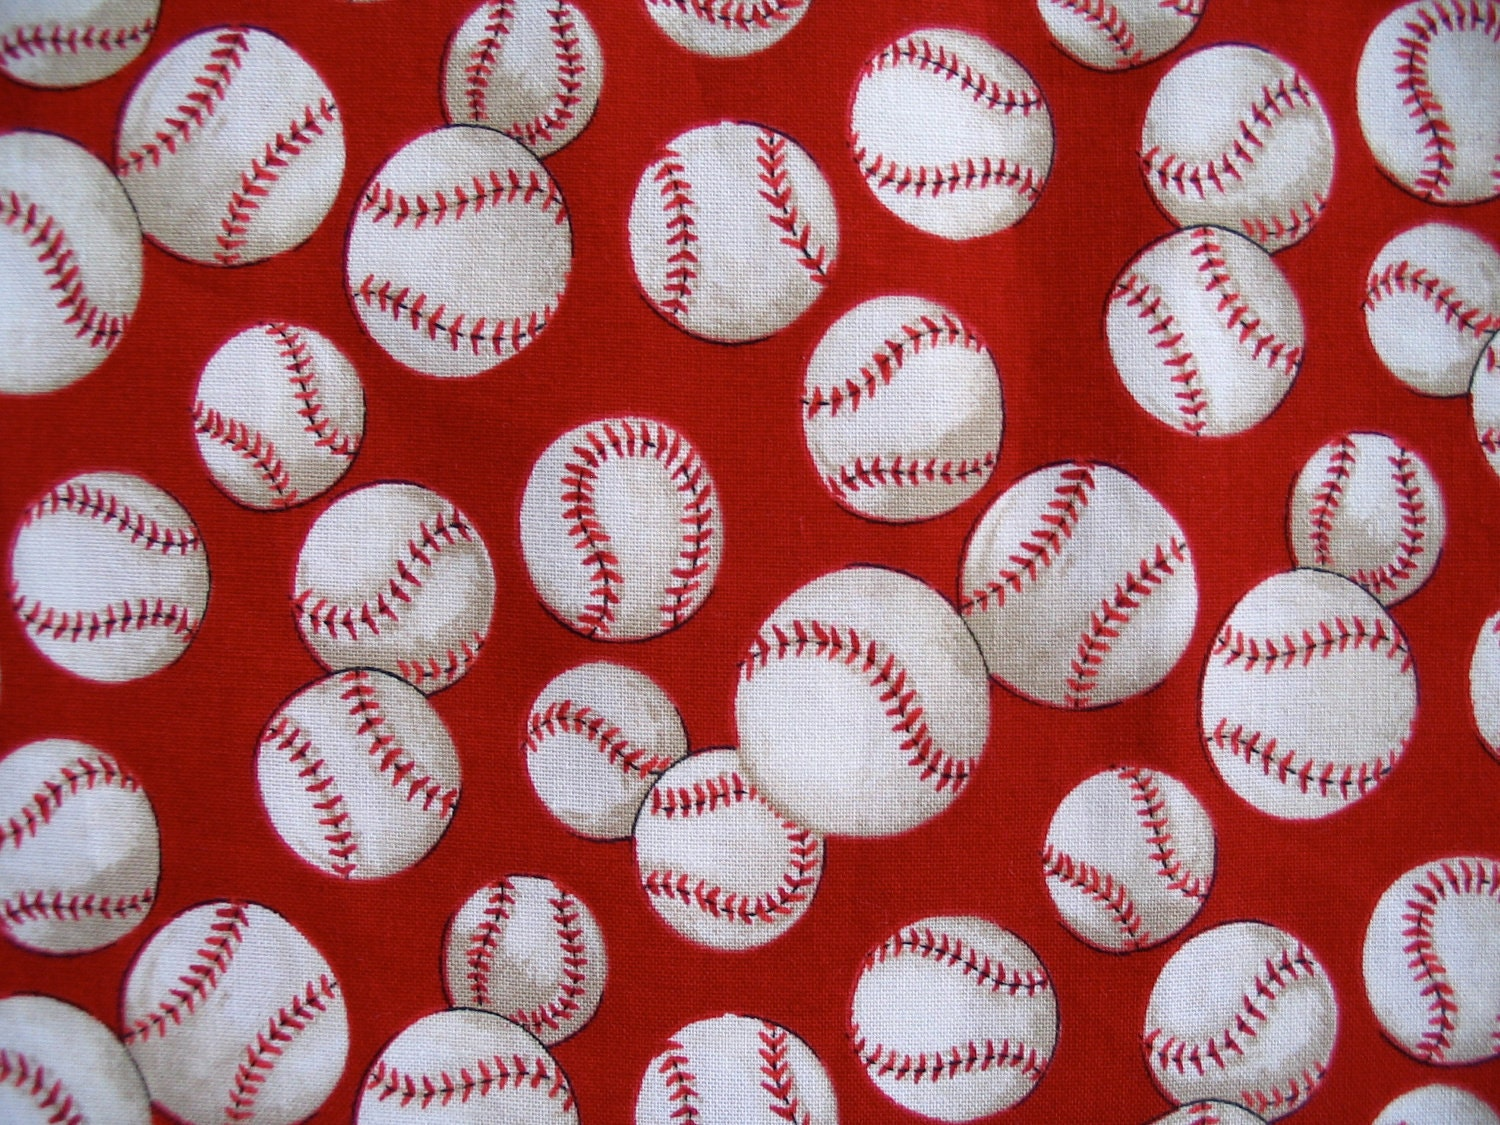 Baseballs and Baseball Bats Cotton Fabric. Baseballs and Baseball Bats Cotton Fabric in not a licensed fabric. This fabric is great for quilti.